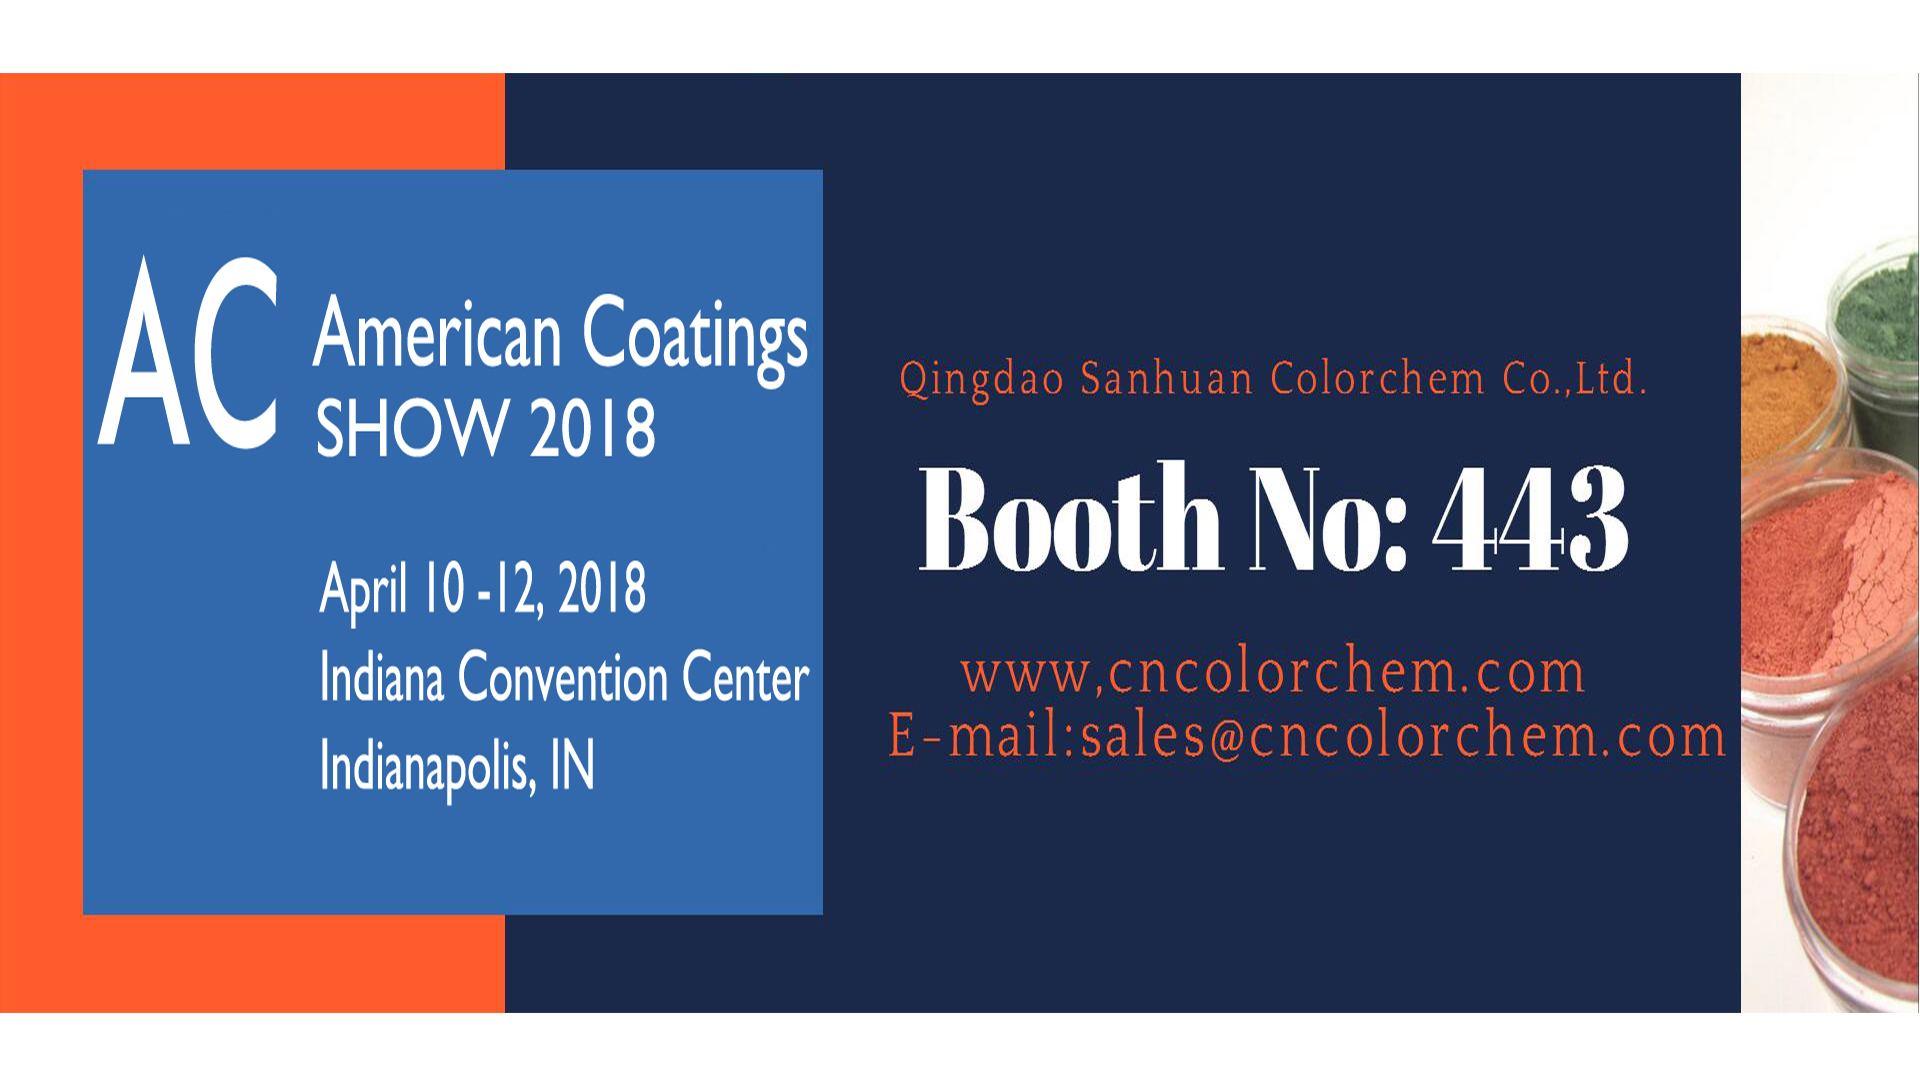 American Coatings Show 2018